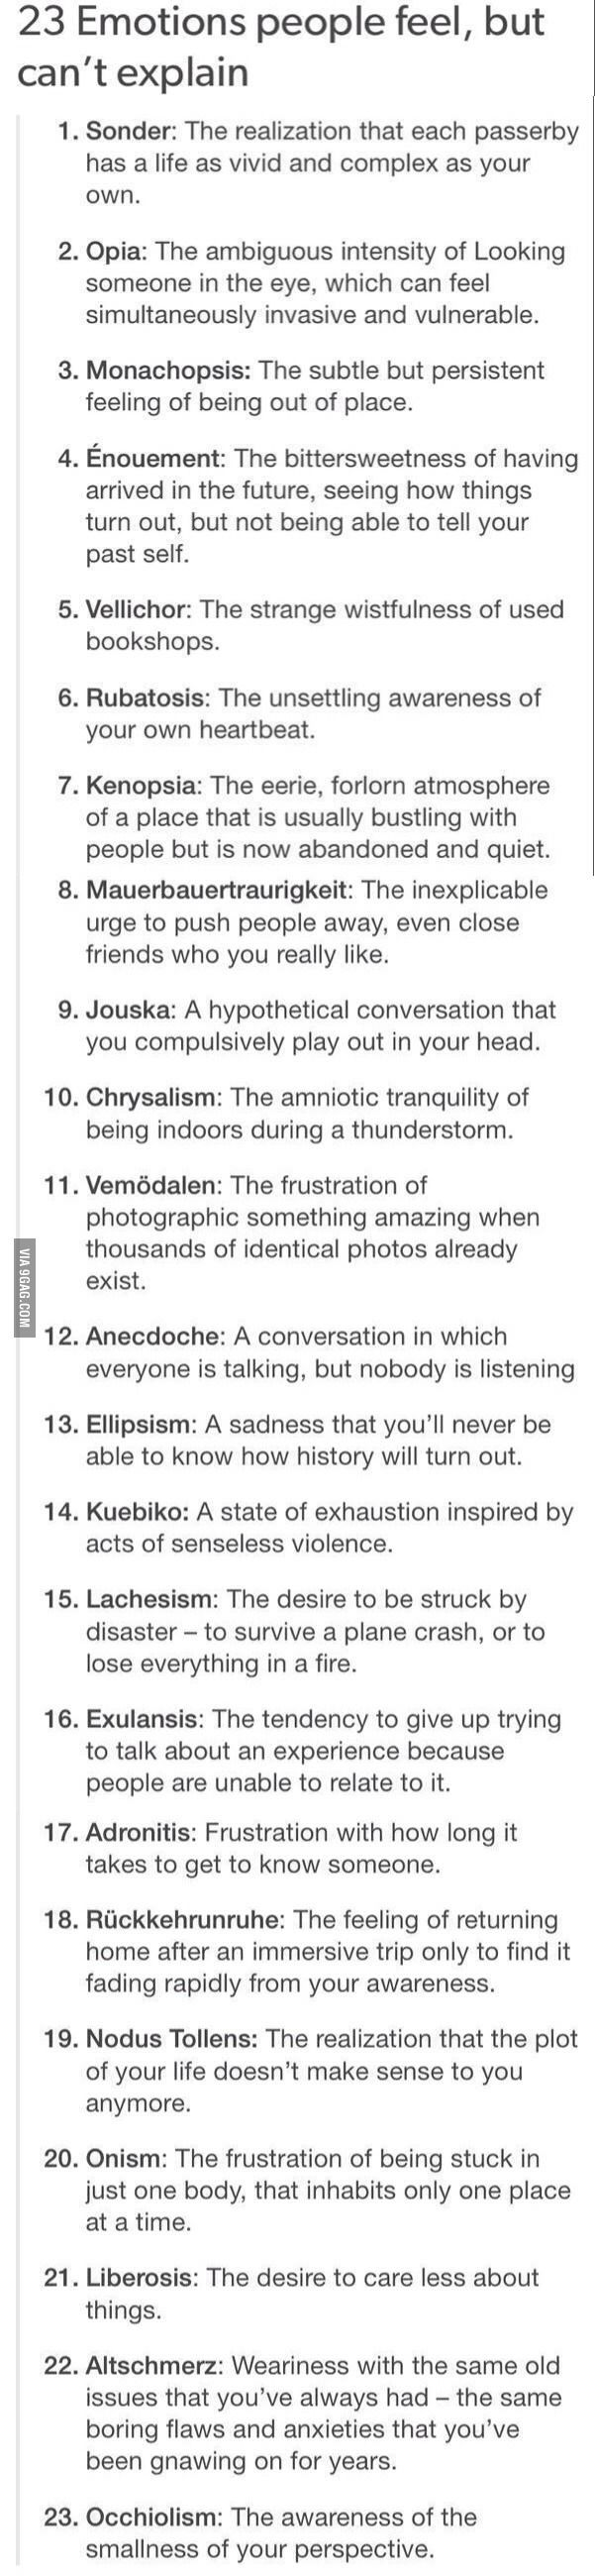 23 emotions people feel but can't explain